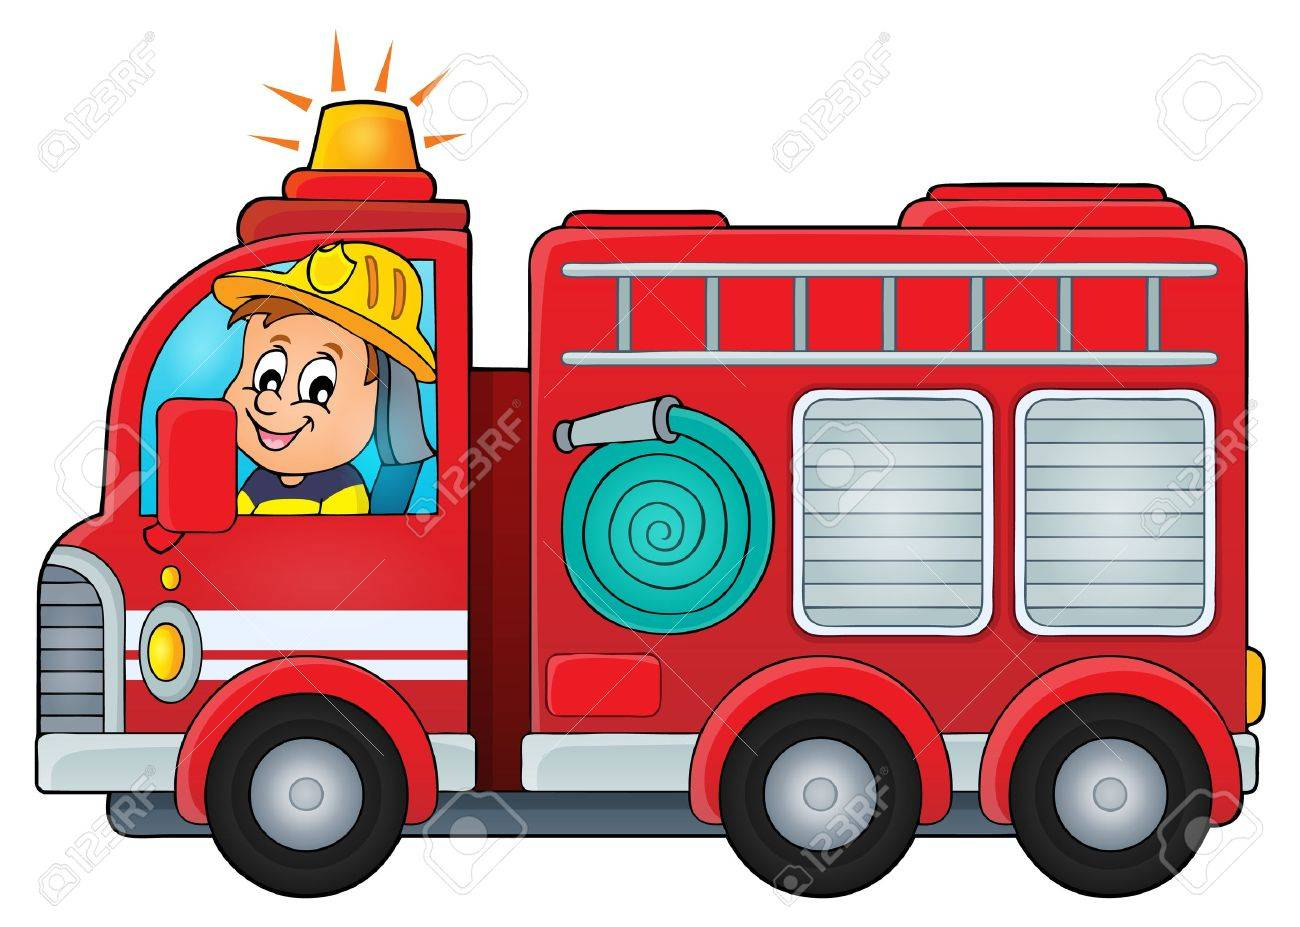 hight resolution of fire truck theme image vector illustration stock vector 48681116